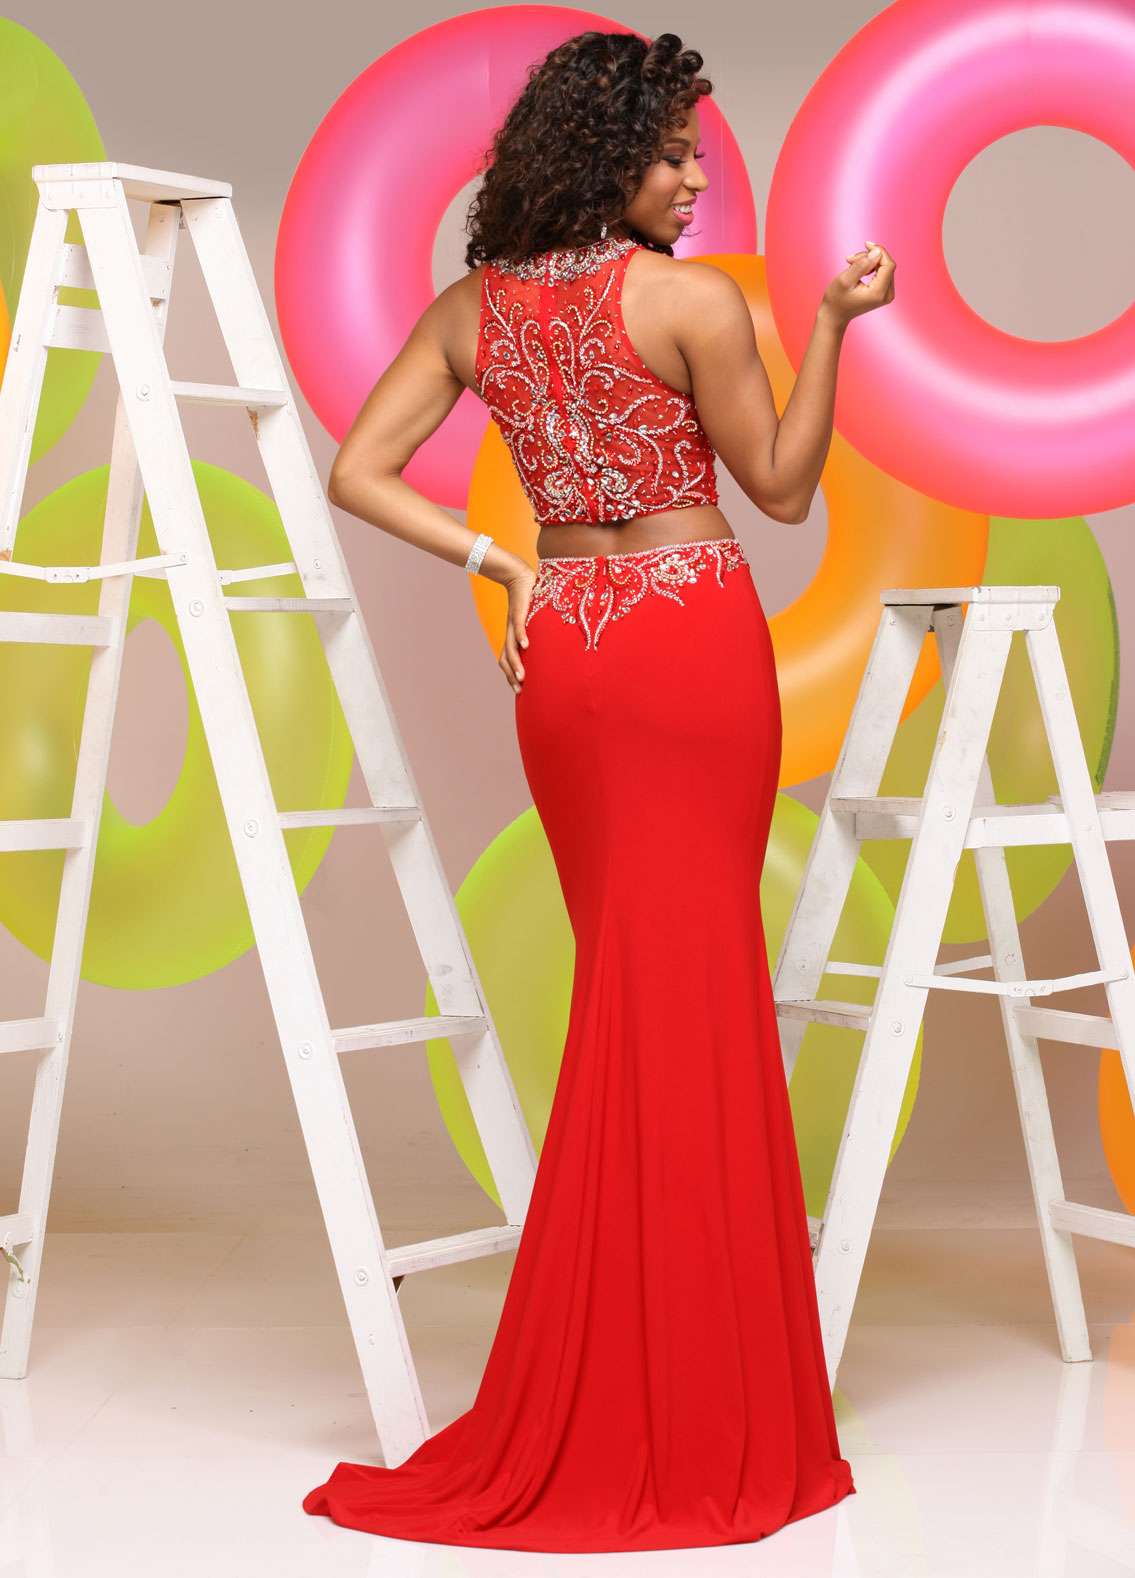 Image showing back view of style #71564